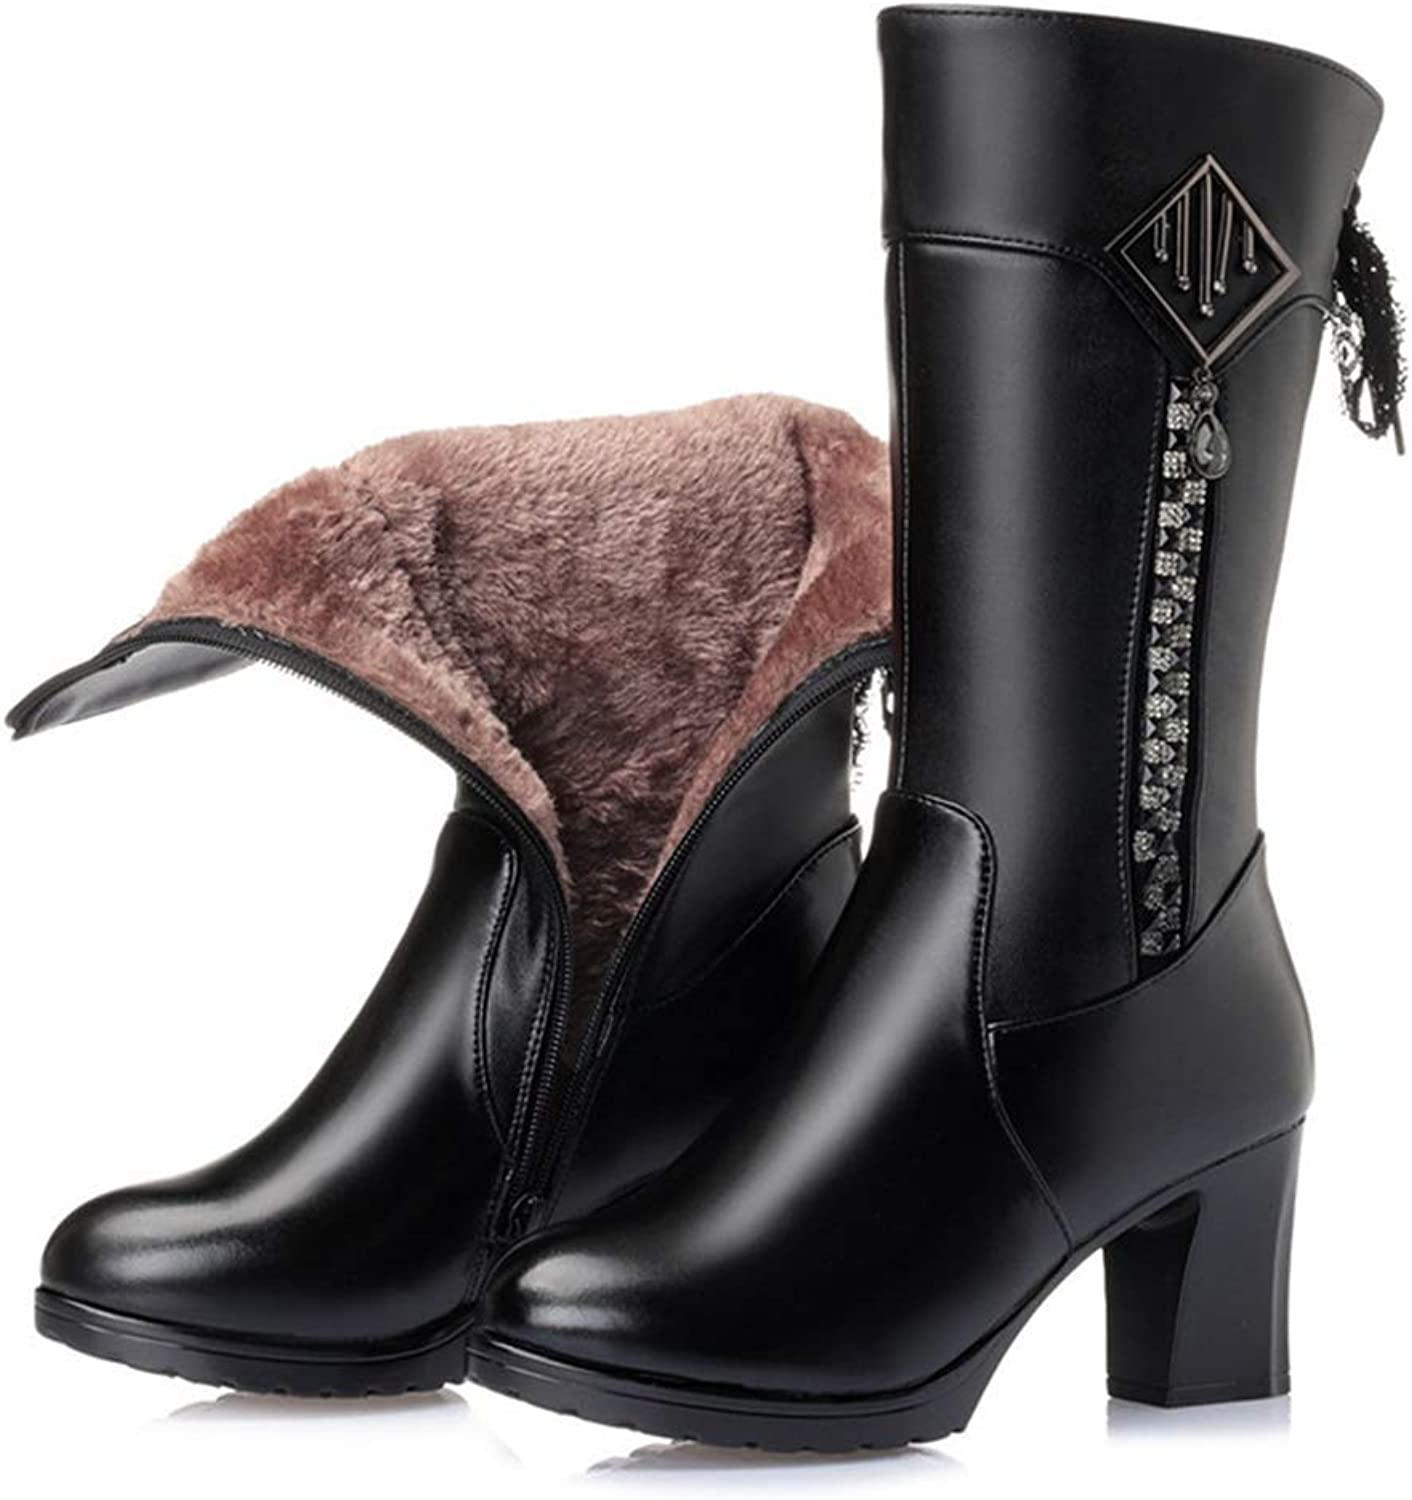 Women High Heel Boots Thick Fur Genuine Leather Mid Calf Boots Women Winter shoes Warm Botas Women Footwears Warm Ladies Casual Joker No Grinding Feet Easy to Match Skinny Black2 6 M US Boots